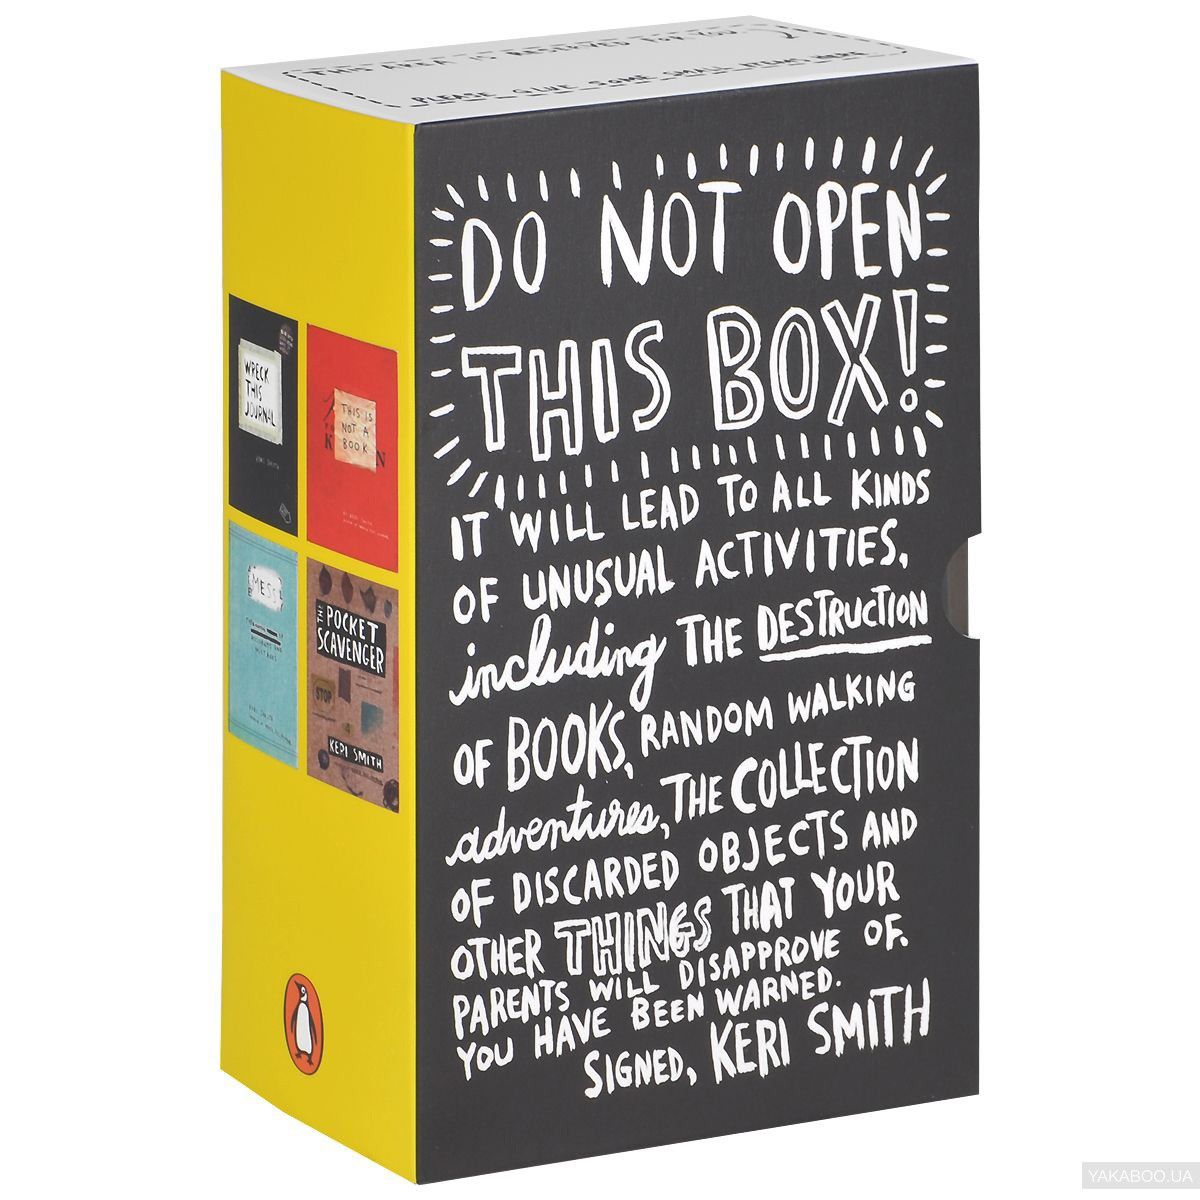 Do Not Open This Box! Wreck This Journal, This Is Not A Book, Mess, Pocket Scavenger (комплект из 4 книг)